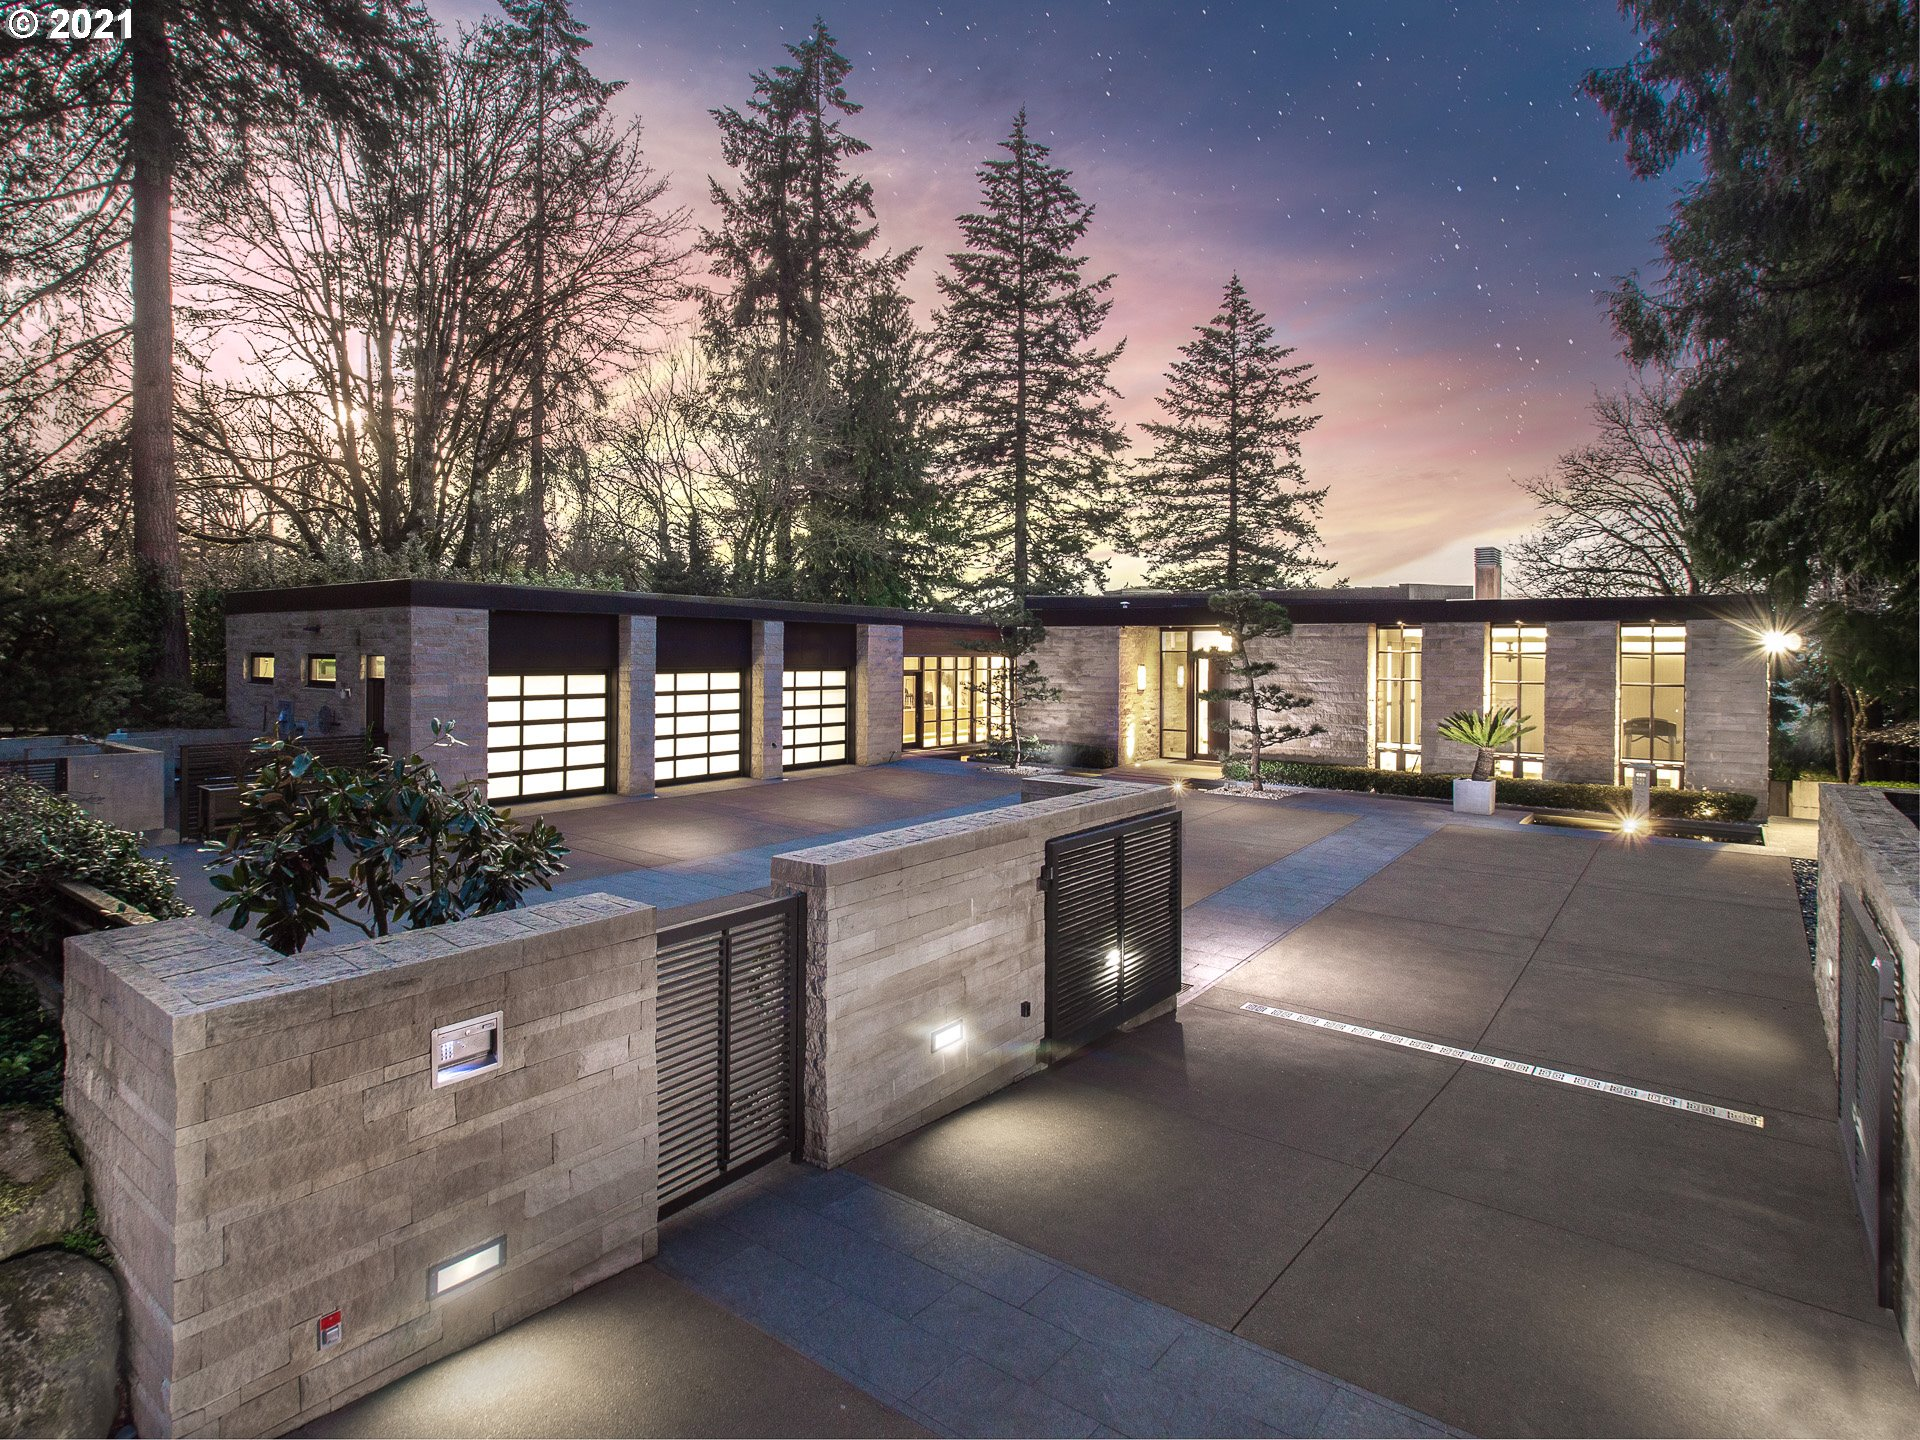 A paradise of contemporary custom architecture, sparkling lake views, private dock & incredible infrastructure, this retreat sanctuary features walls of glass, heated limestone floors, fine marble/millwork & superb Zen-inspired lines. Main lvl living w/magnificent  owner's suite, wine cellar, fitness studio, library, multi-level decks & greenhouse at your fingertips. Sauna/steam room, spectacularly appointed gourmet kitchen & over 1600 ft of bonus/storage. Truly elevated lakefront living!